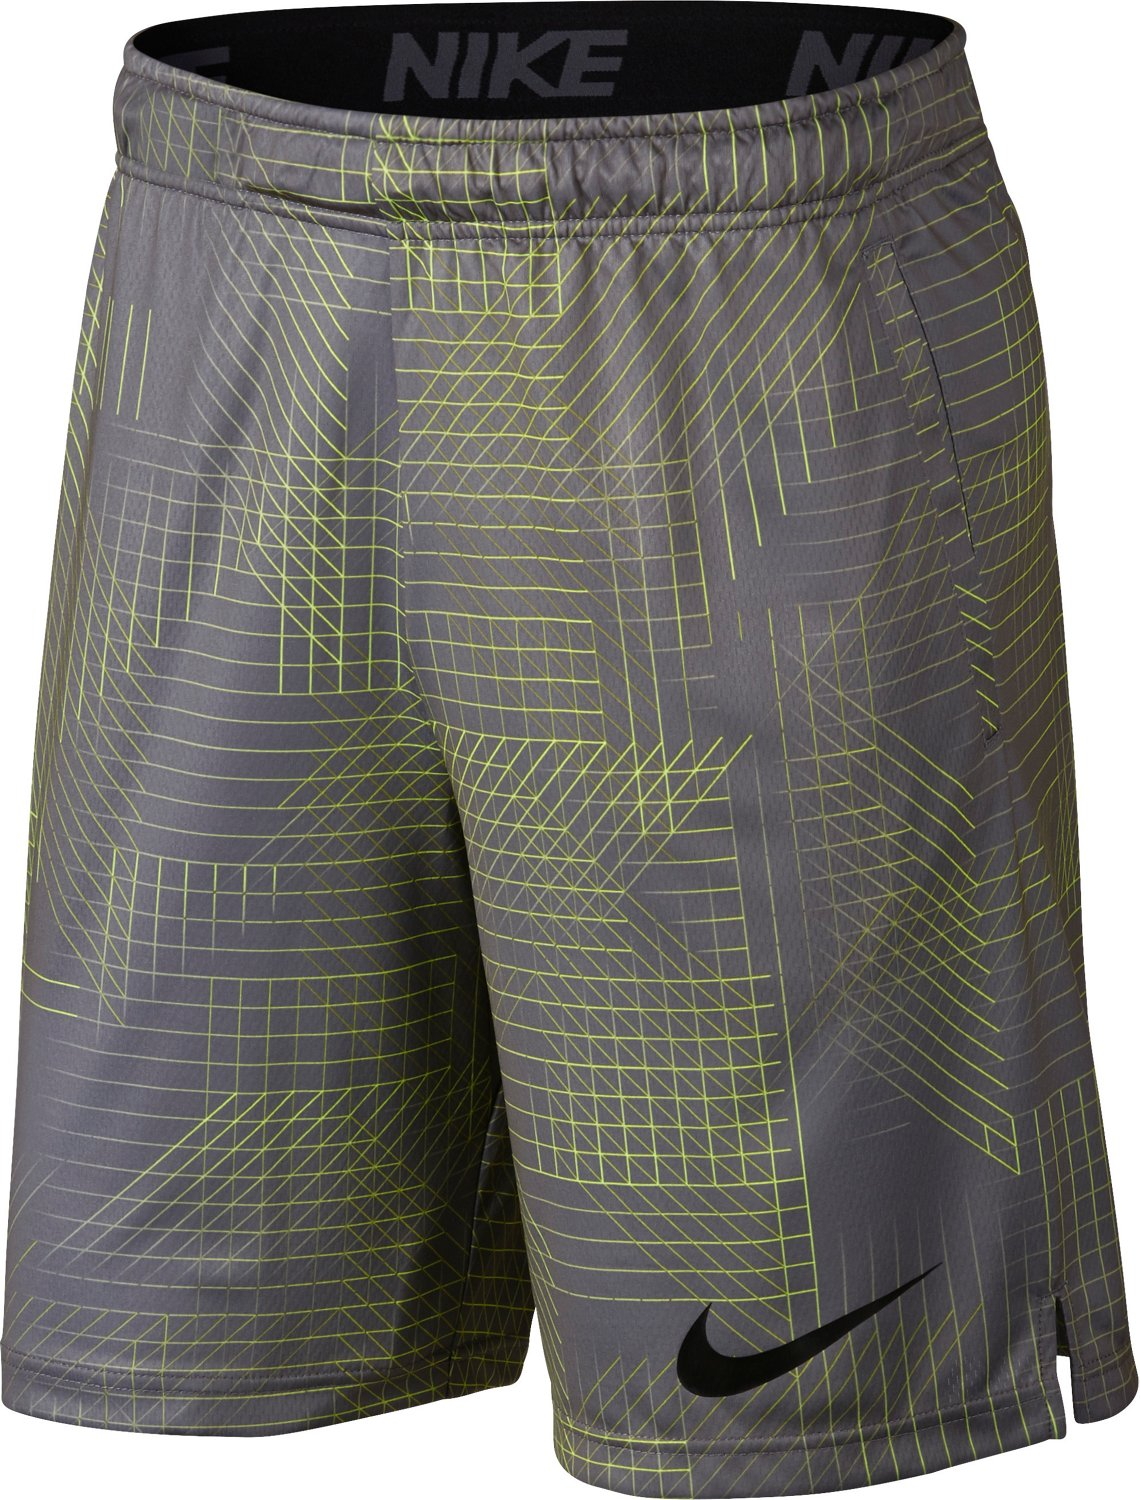 Display product reviews for Nike Men's Dry Training Short